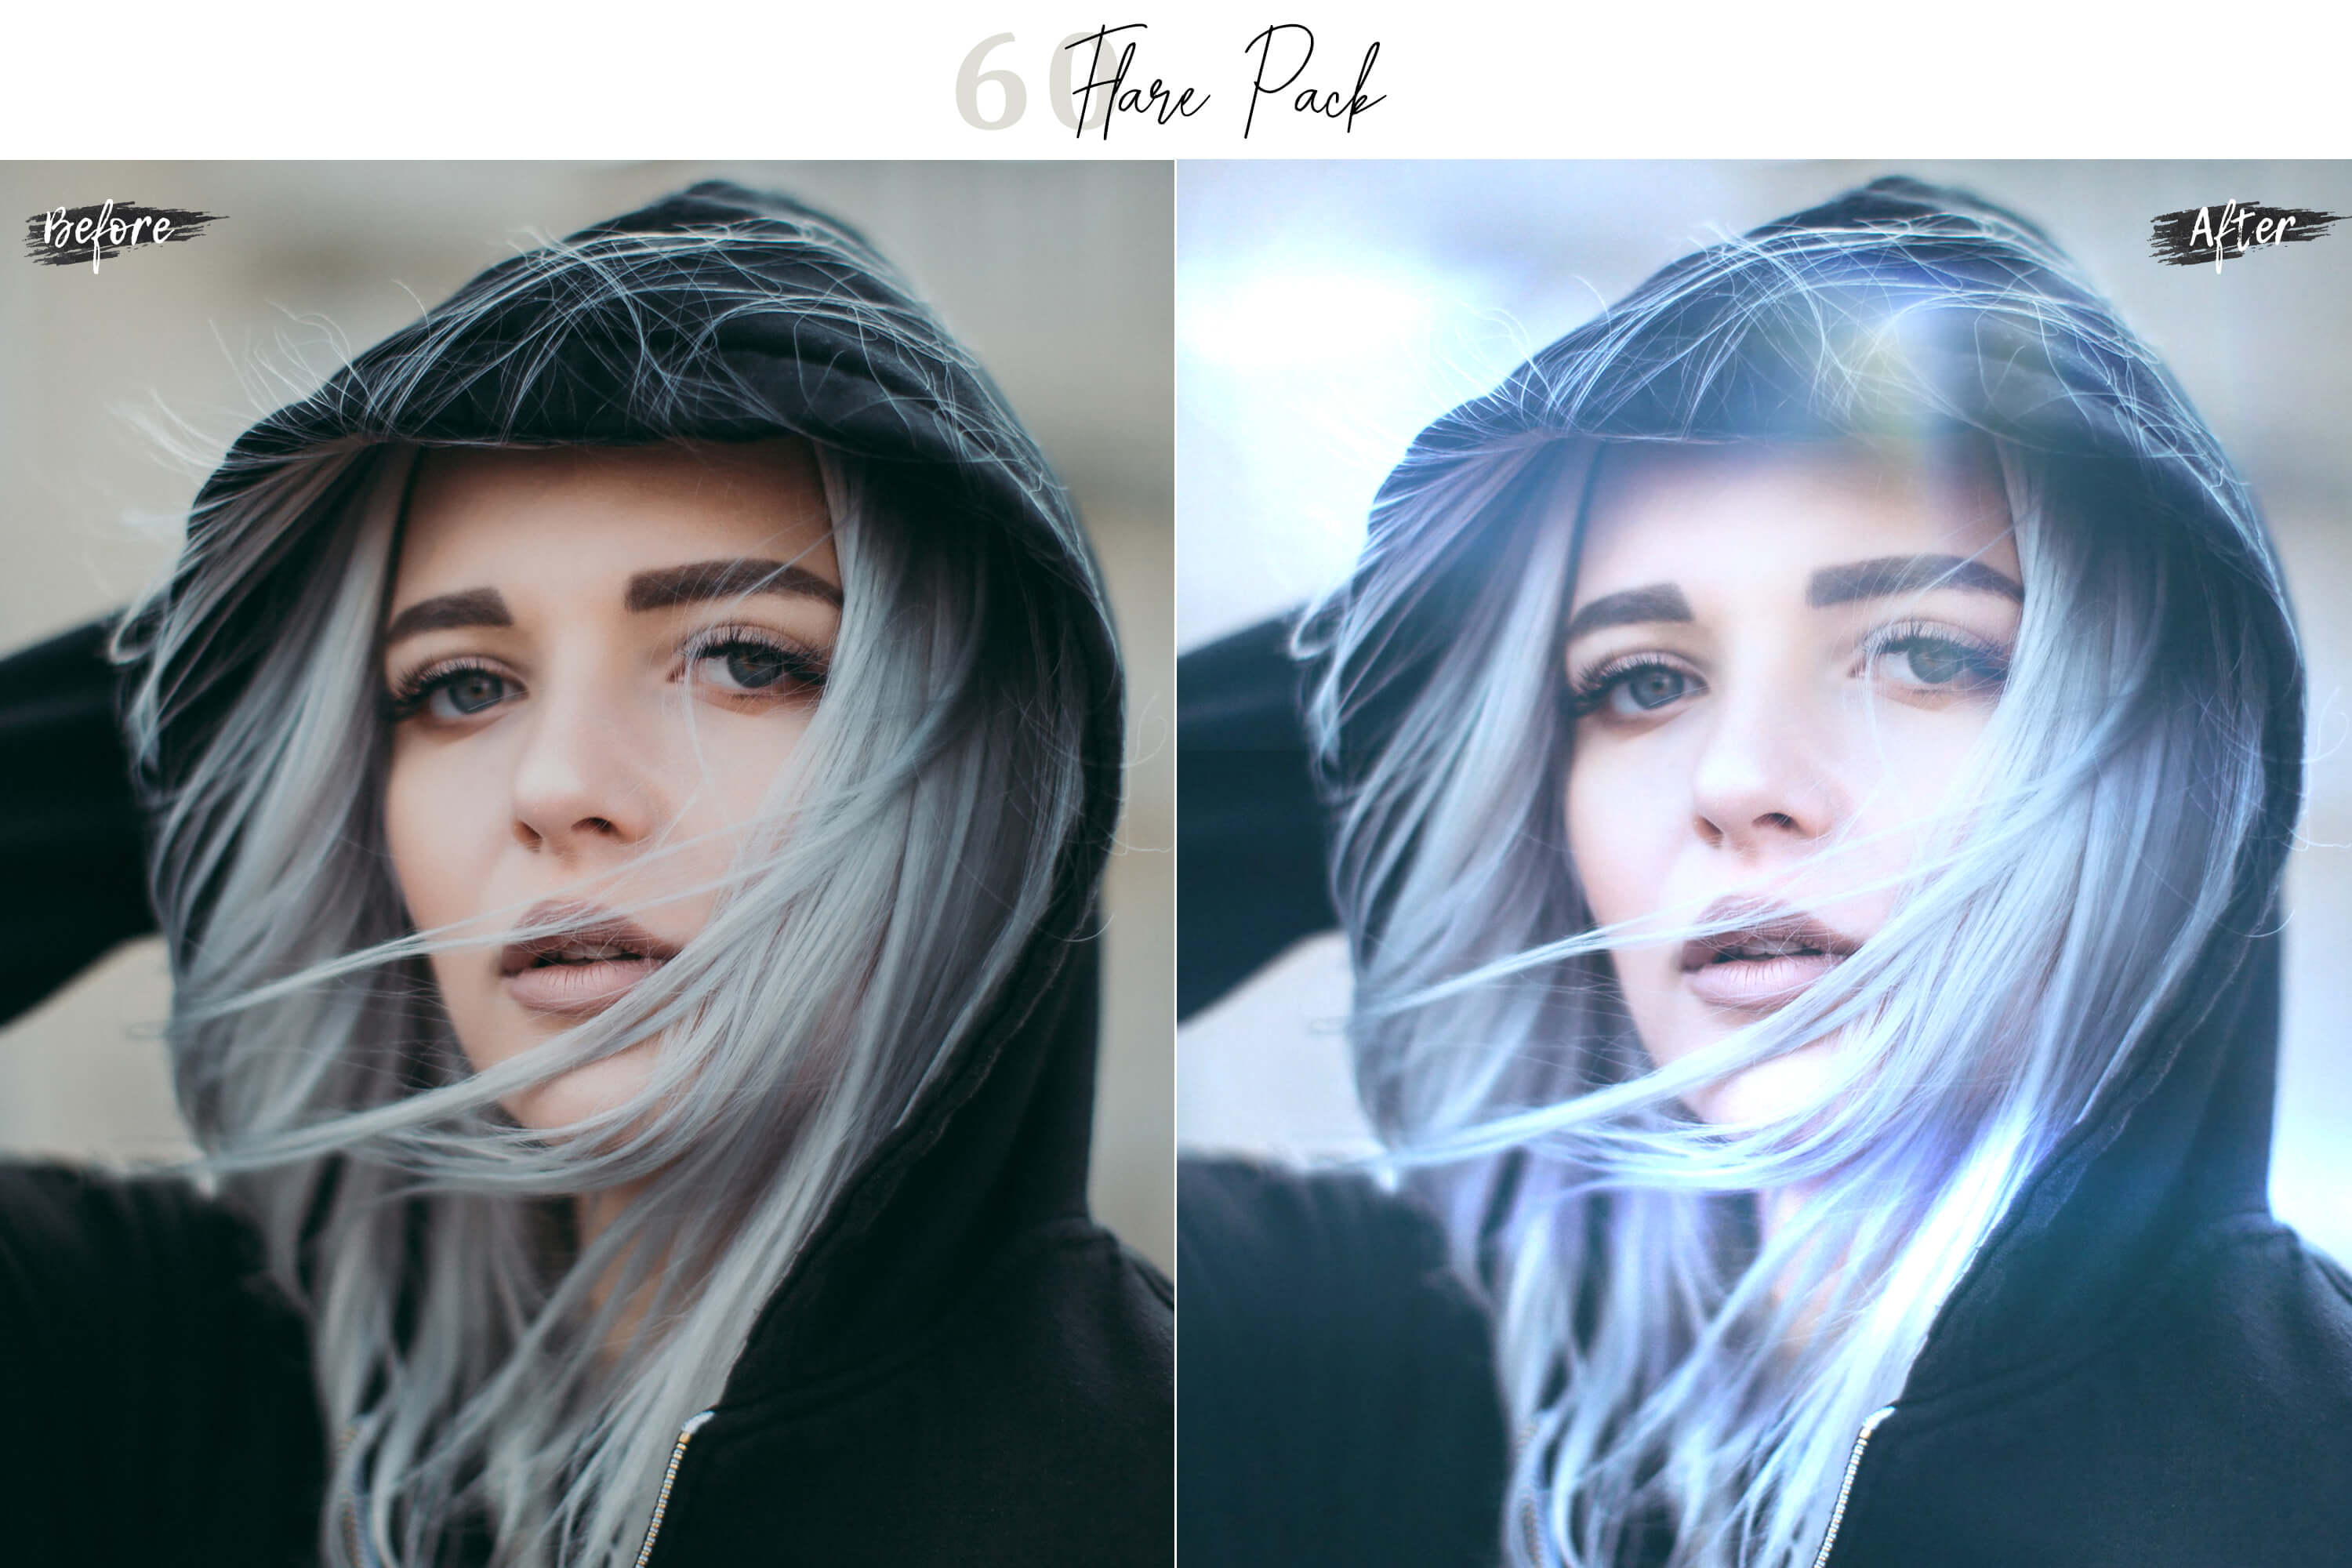 60 Flare Pack 02 lights Effect Photo Overlays example image 6